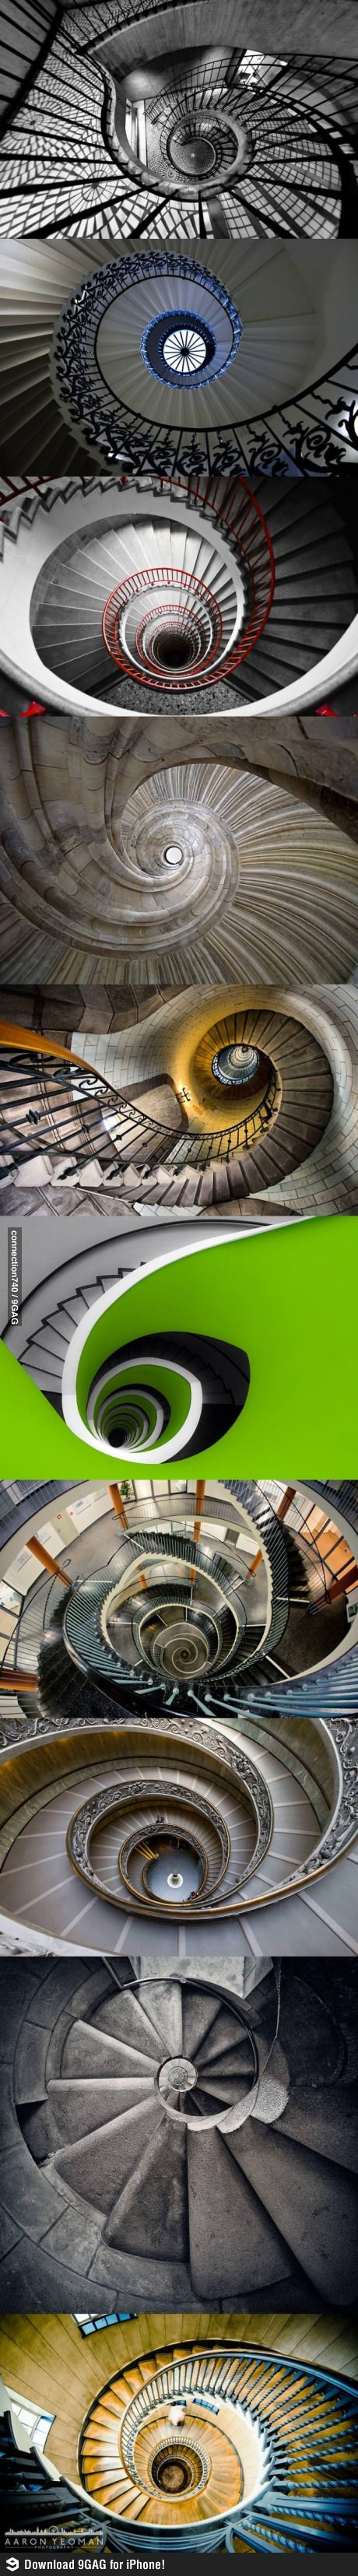 Awesome Spiral Stairs - http://www.funterest.fr/awesome-spiral-stairs.htm